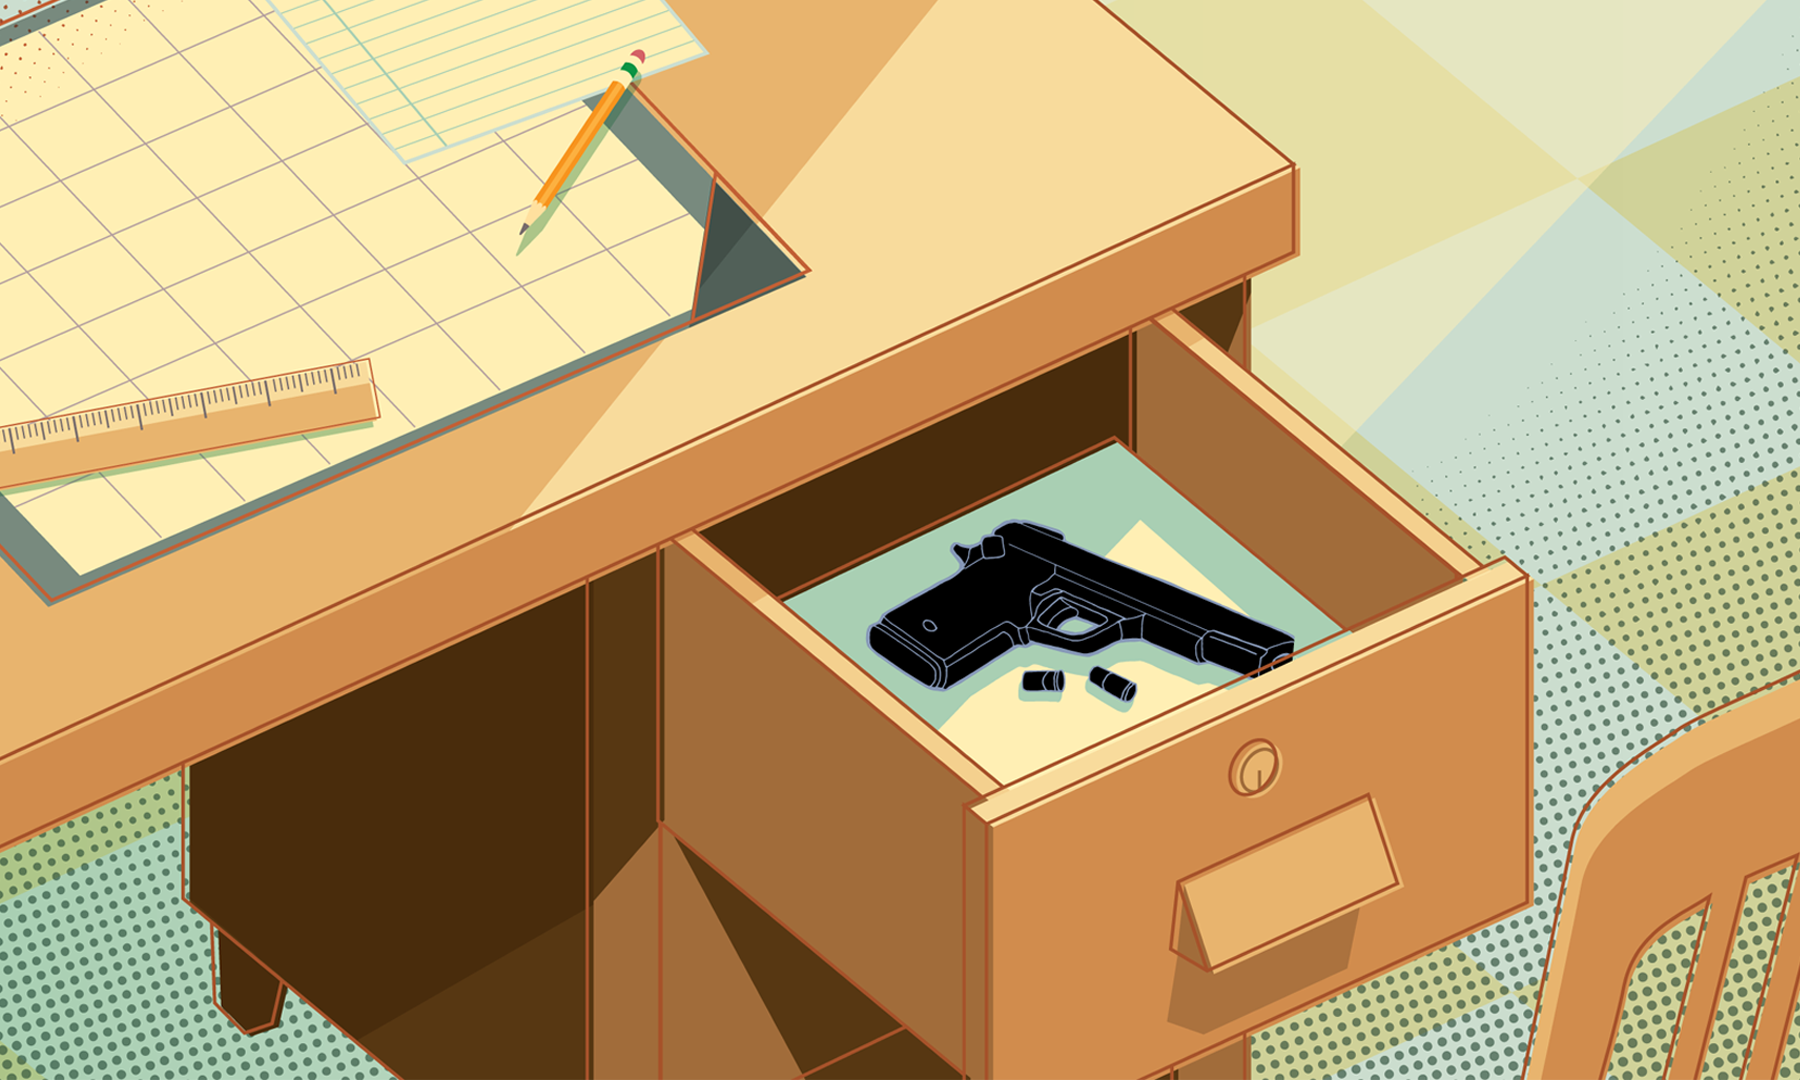 Illustration of a gun inside of a desk drawer.